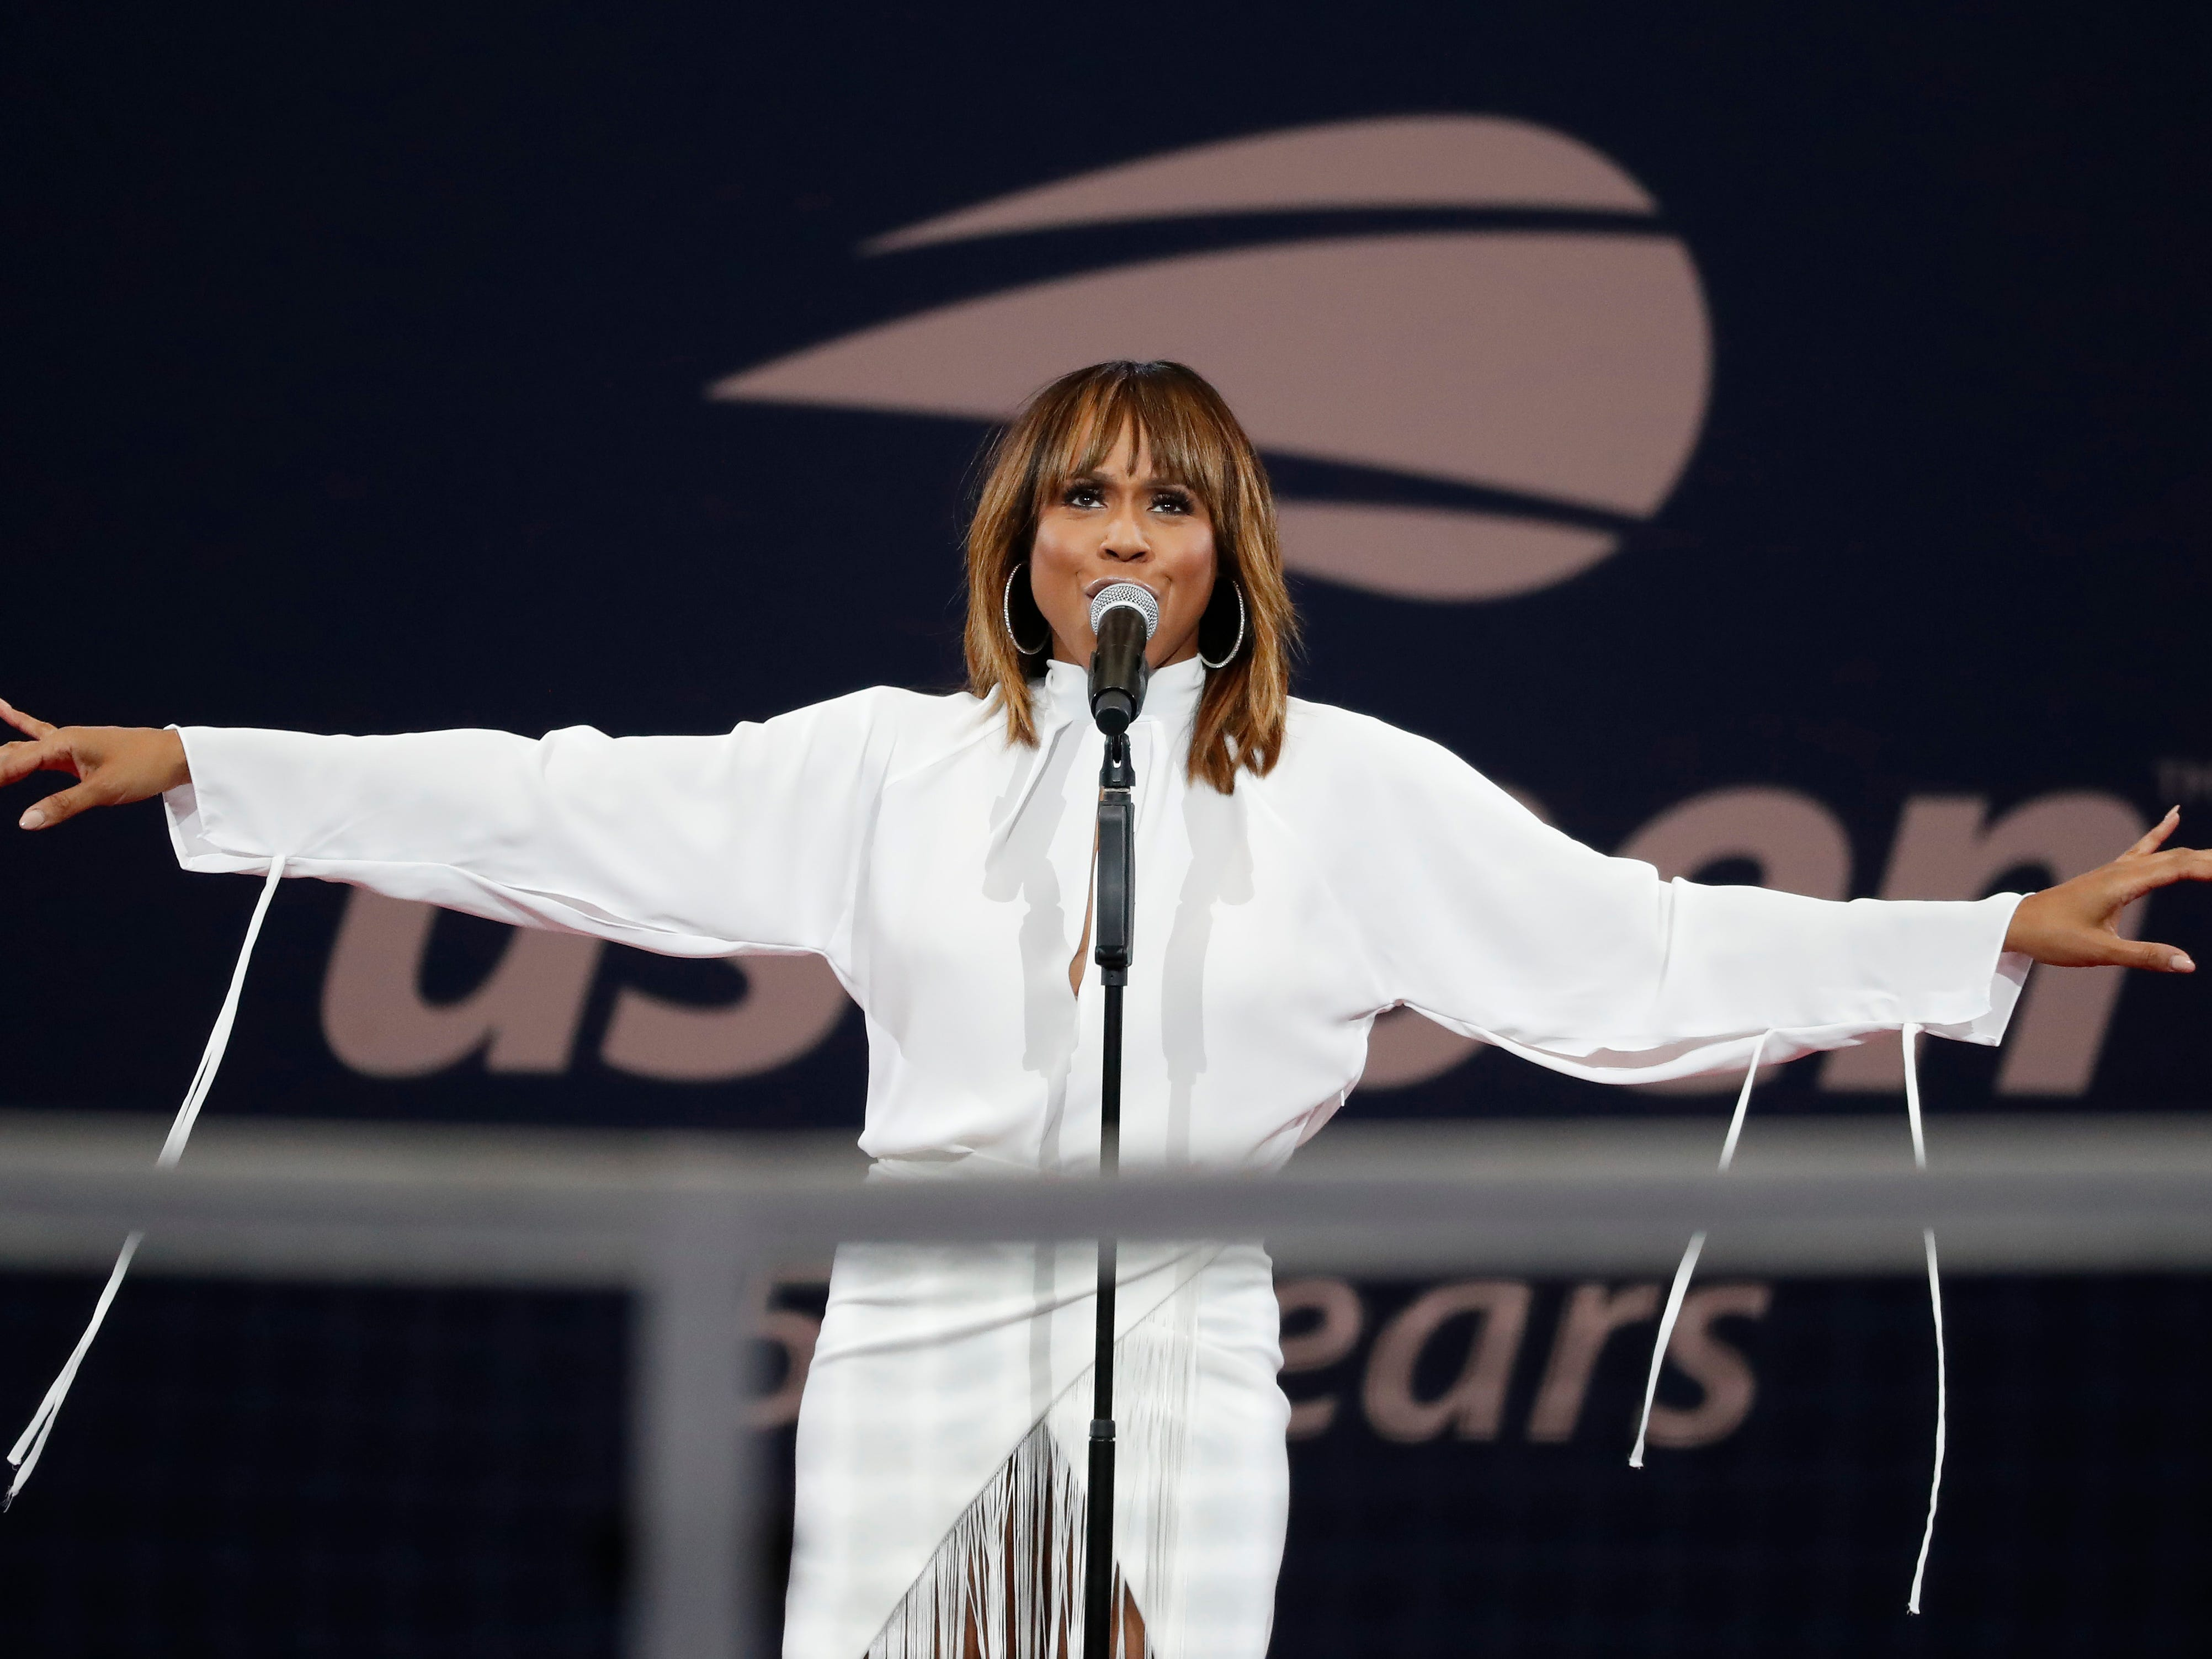 Deborah Cox performs prior to the women's final match between Serena Williams and Naomi Osaka.